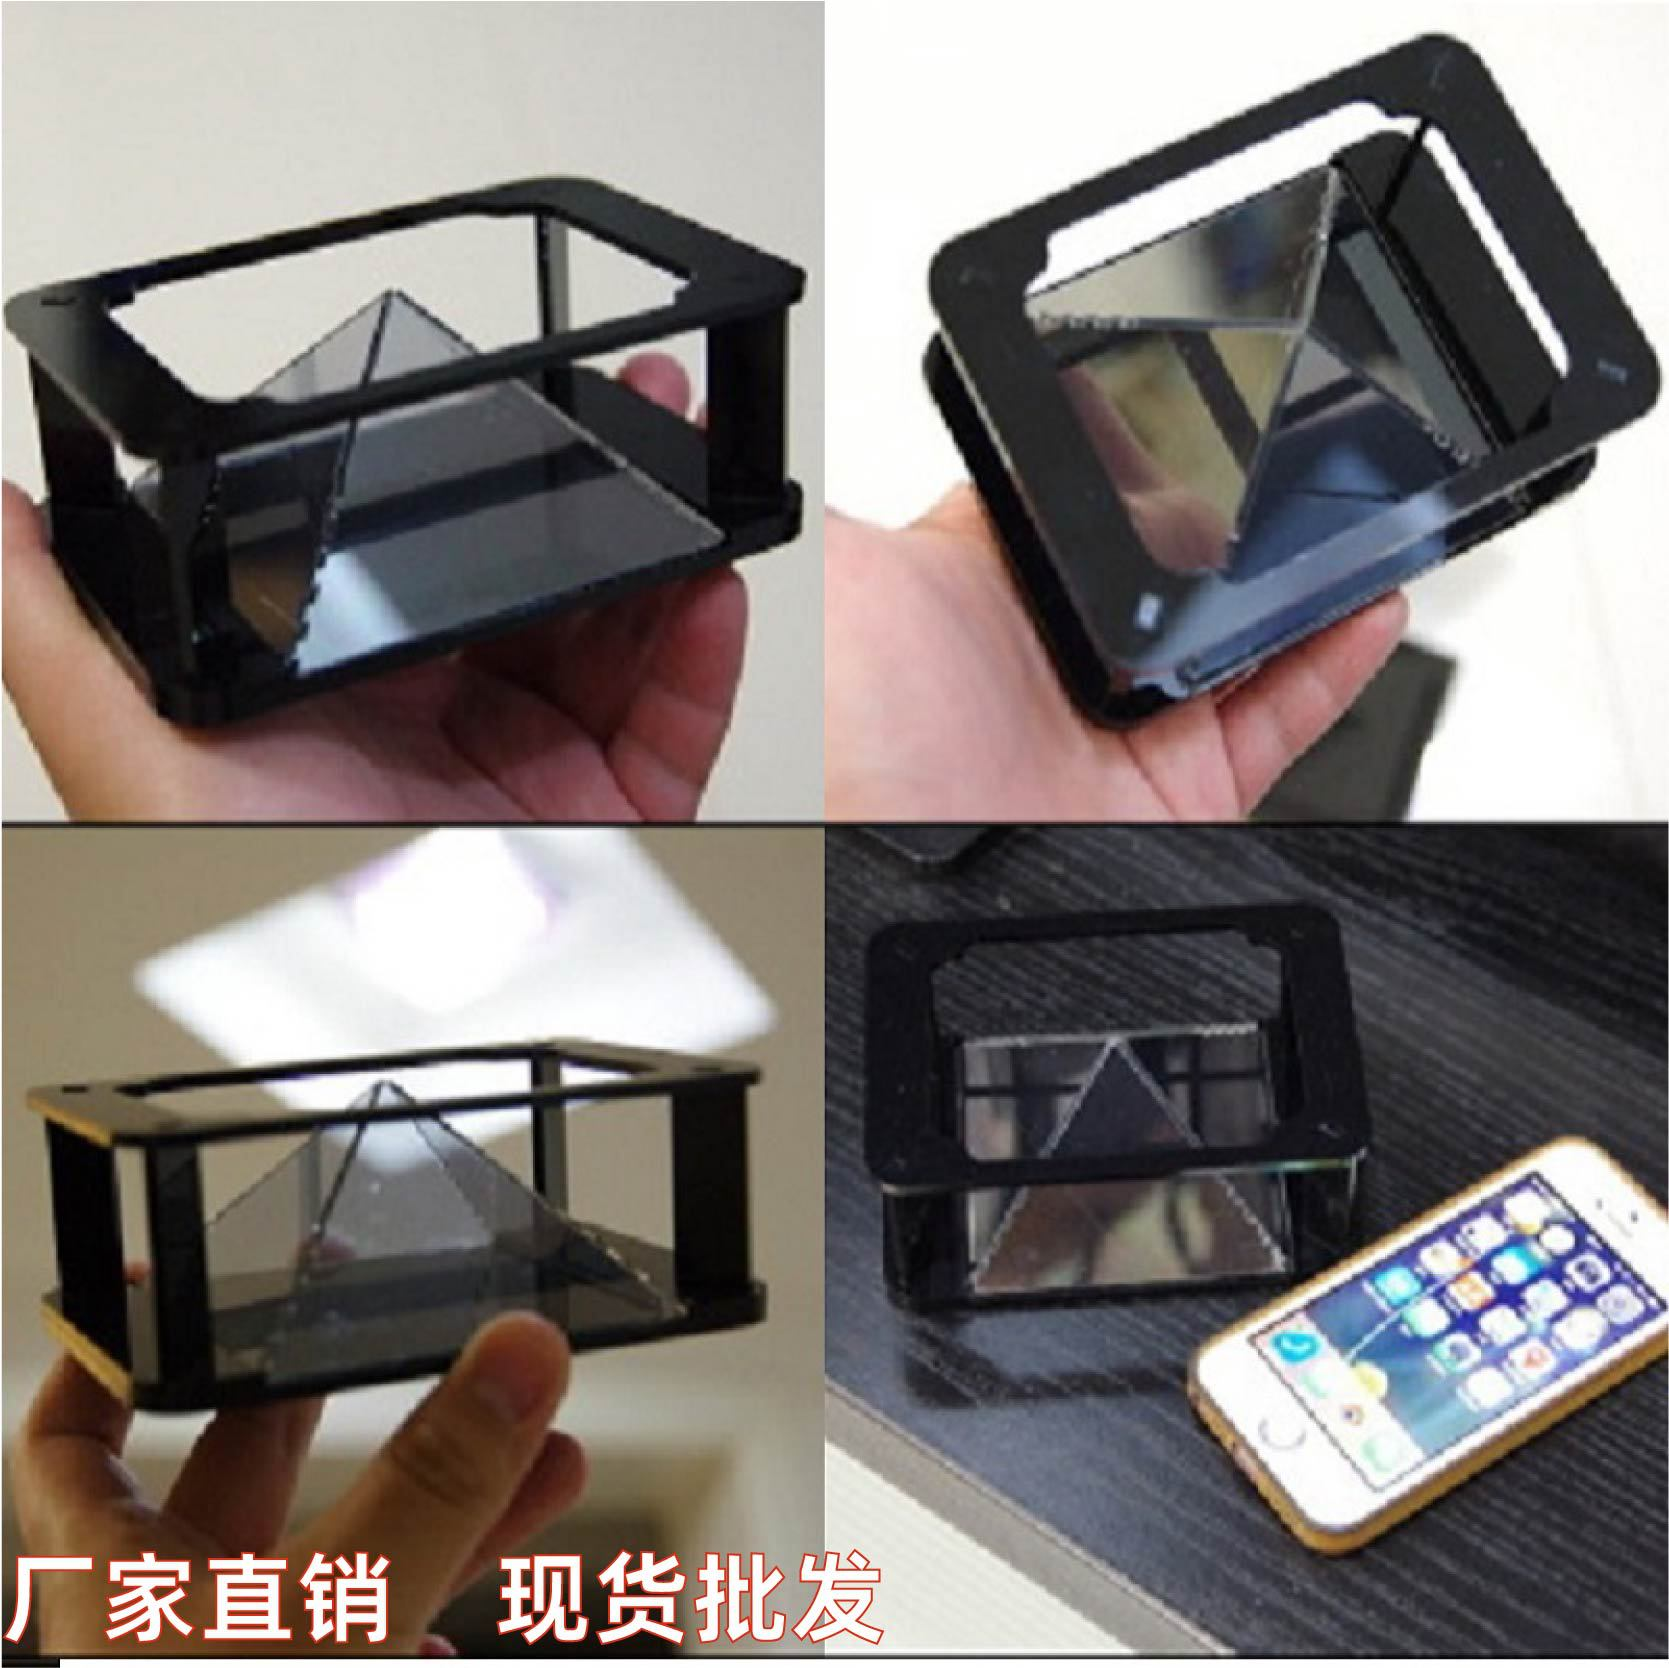 Holographic 3D Mobile Phone Projector Triangular Pyramid Naked Eye 3D Four-dimensional Image 360 Holographic Display Cabinet